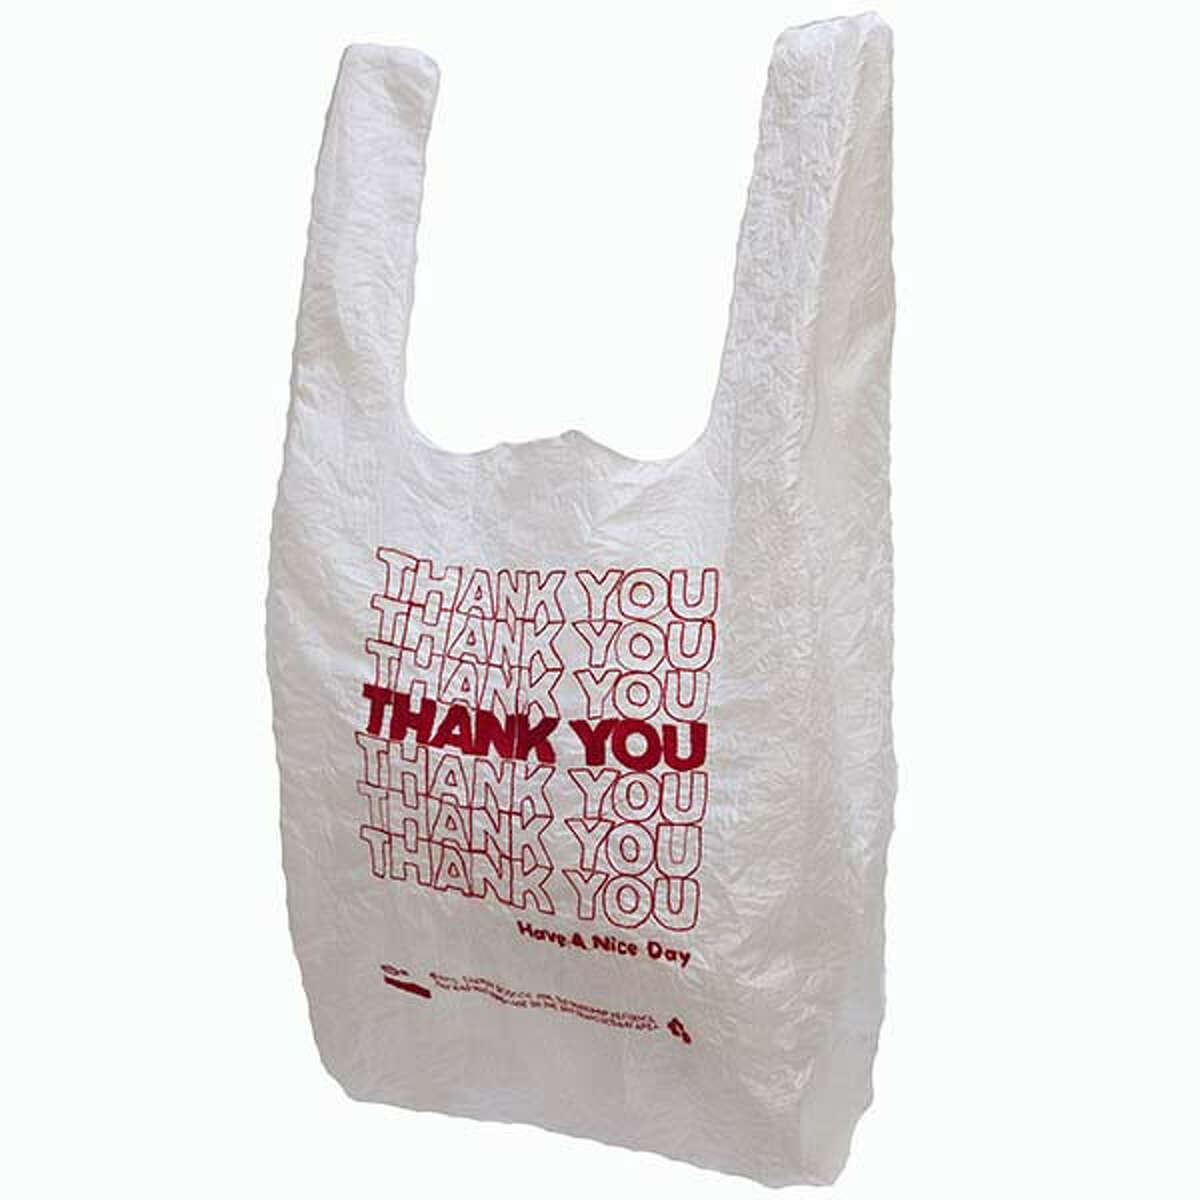 Thank You Bag washable, reuseable tote, $28, by Lauren DiCioccio at the Museum of Craft and Design. 2569 Third St., San Francisco; (415) 773-0303; www.sfmcd.org. 11 a.m.-6 p.m. Tues.-Wed., 11 a.m.-7 p.m. Thurs., 11 a.m.-6 p.m. Fri.-Sat., noon-5 p.m. Sun. Closed Christmas Day.